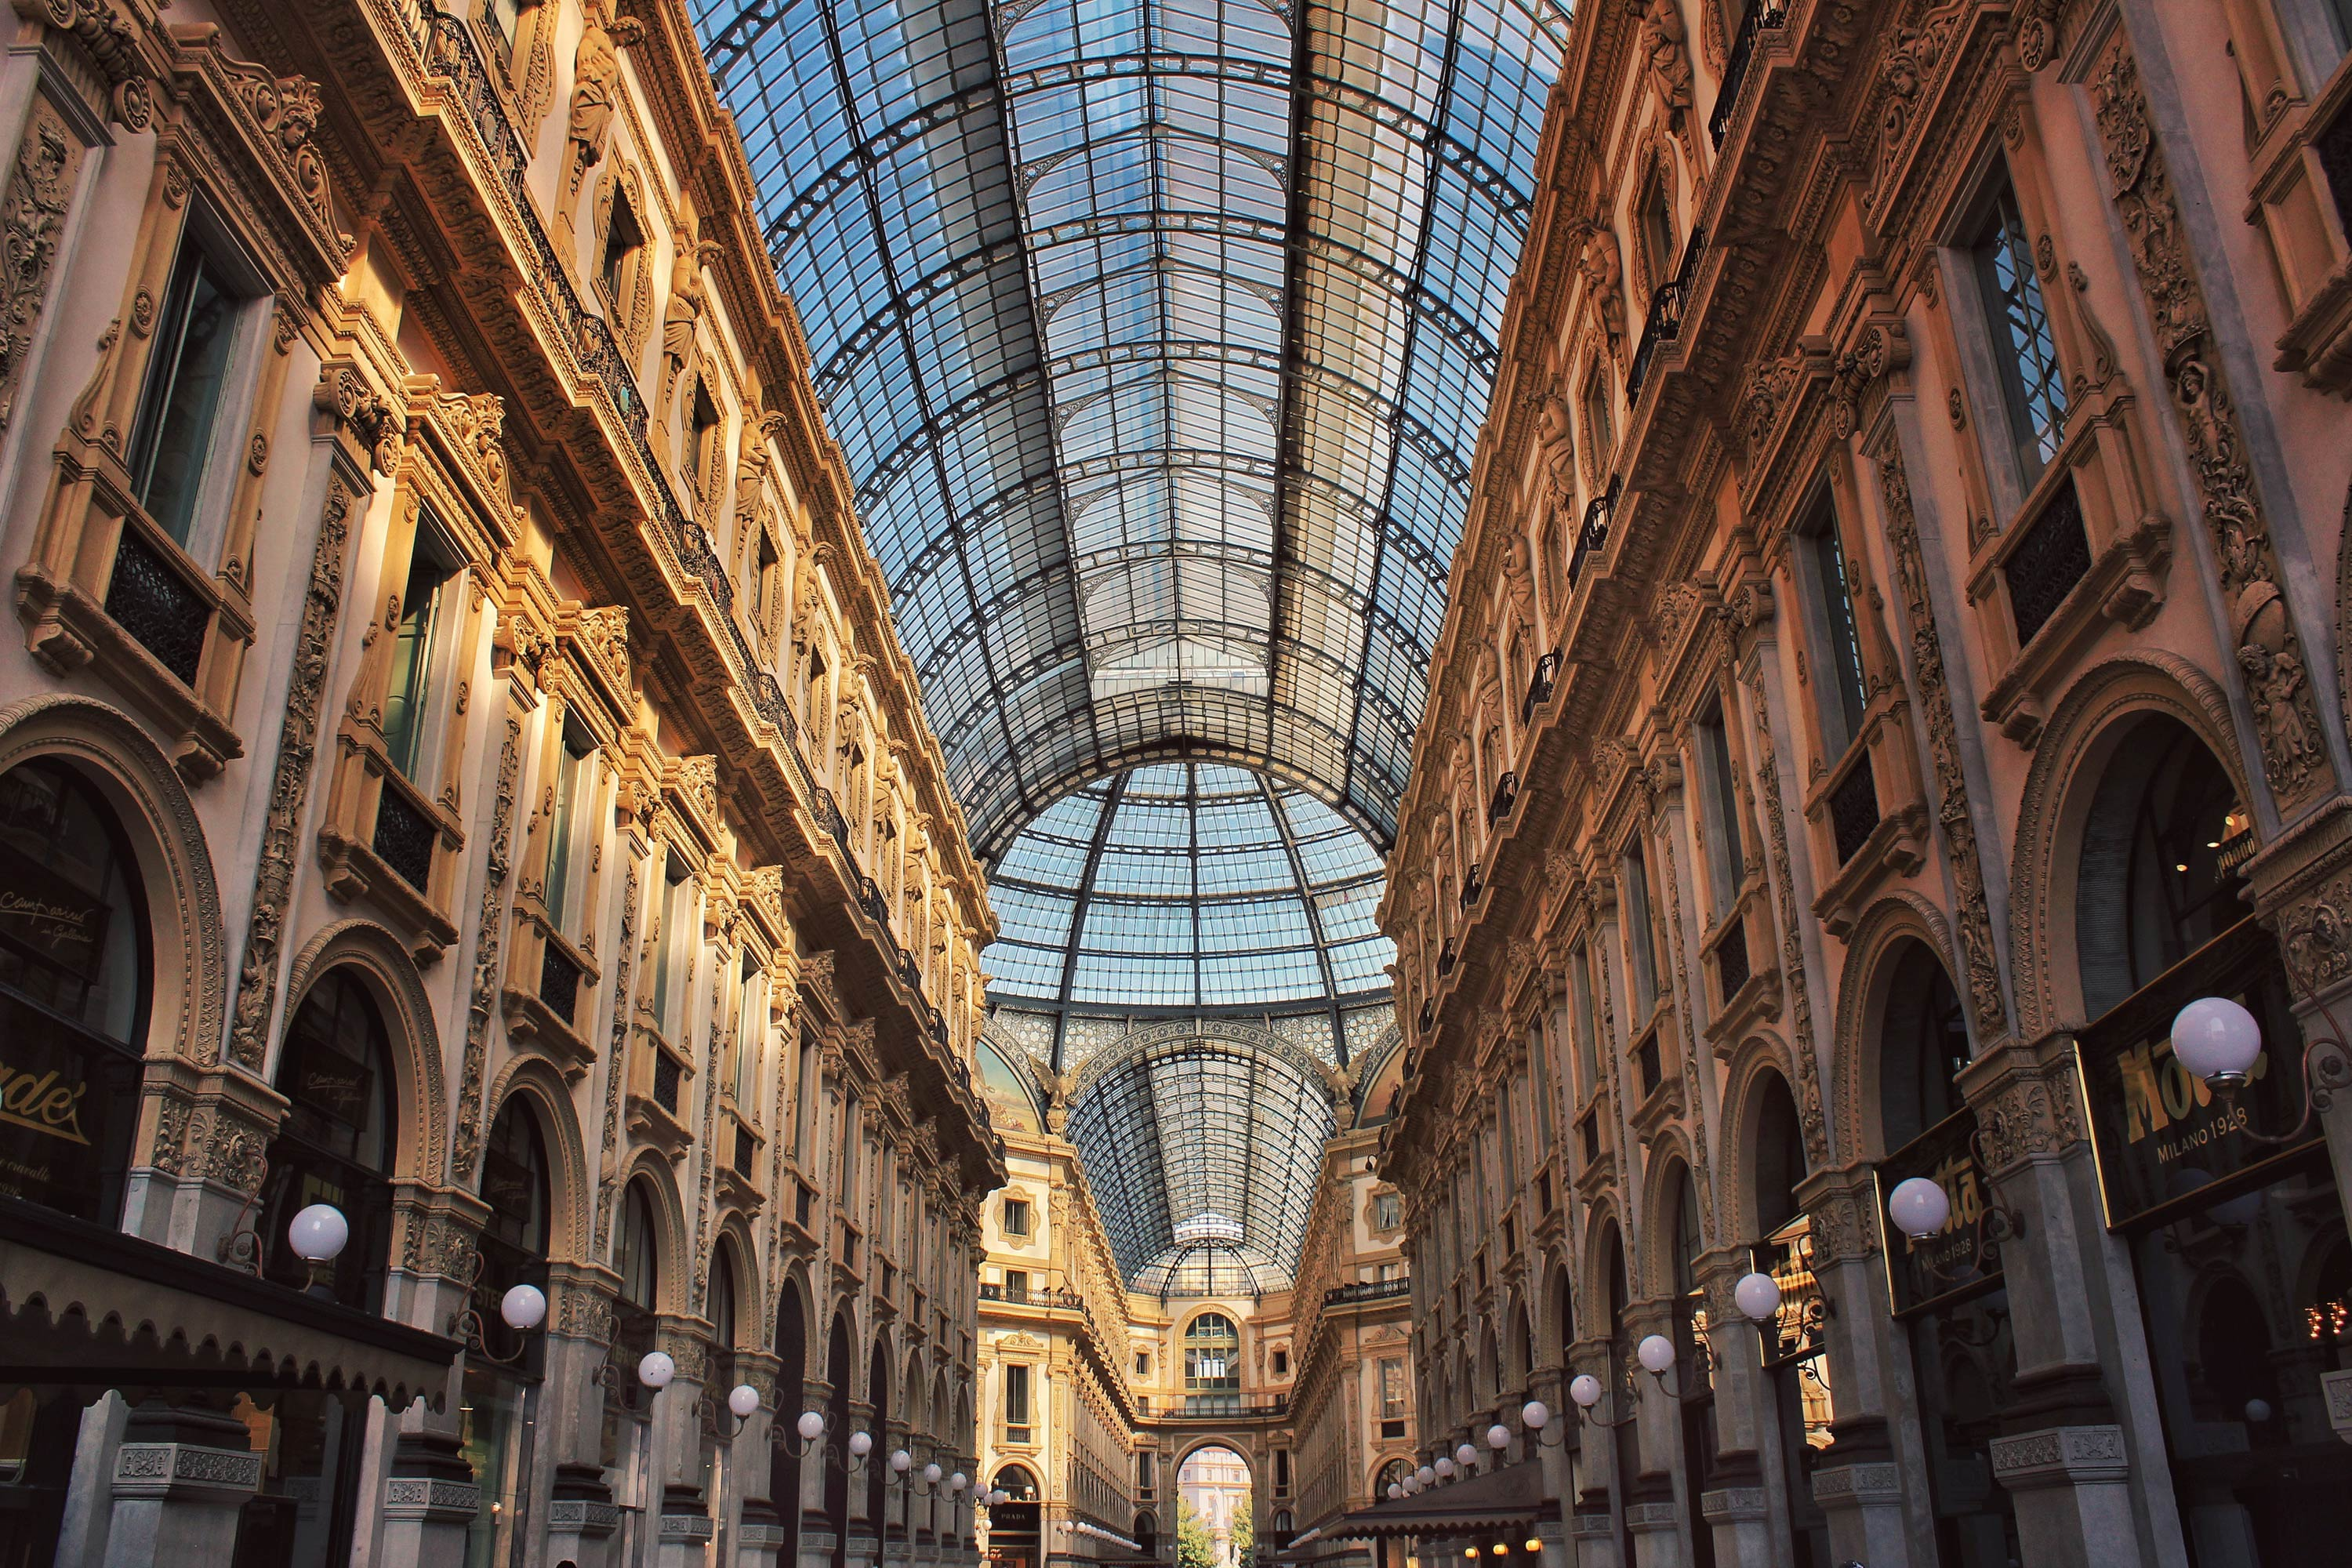 The Vittorio Emanuele Gallery